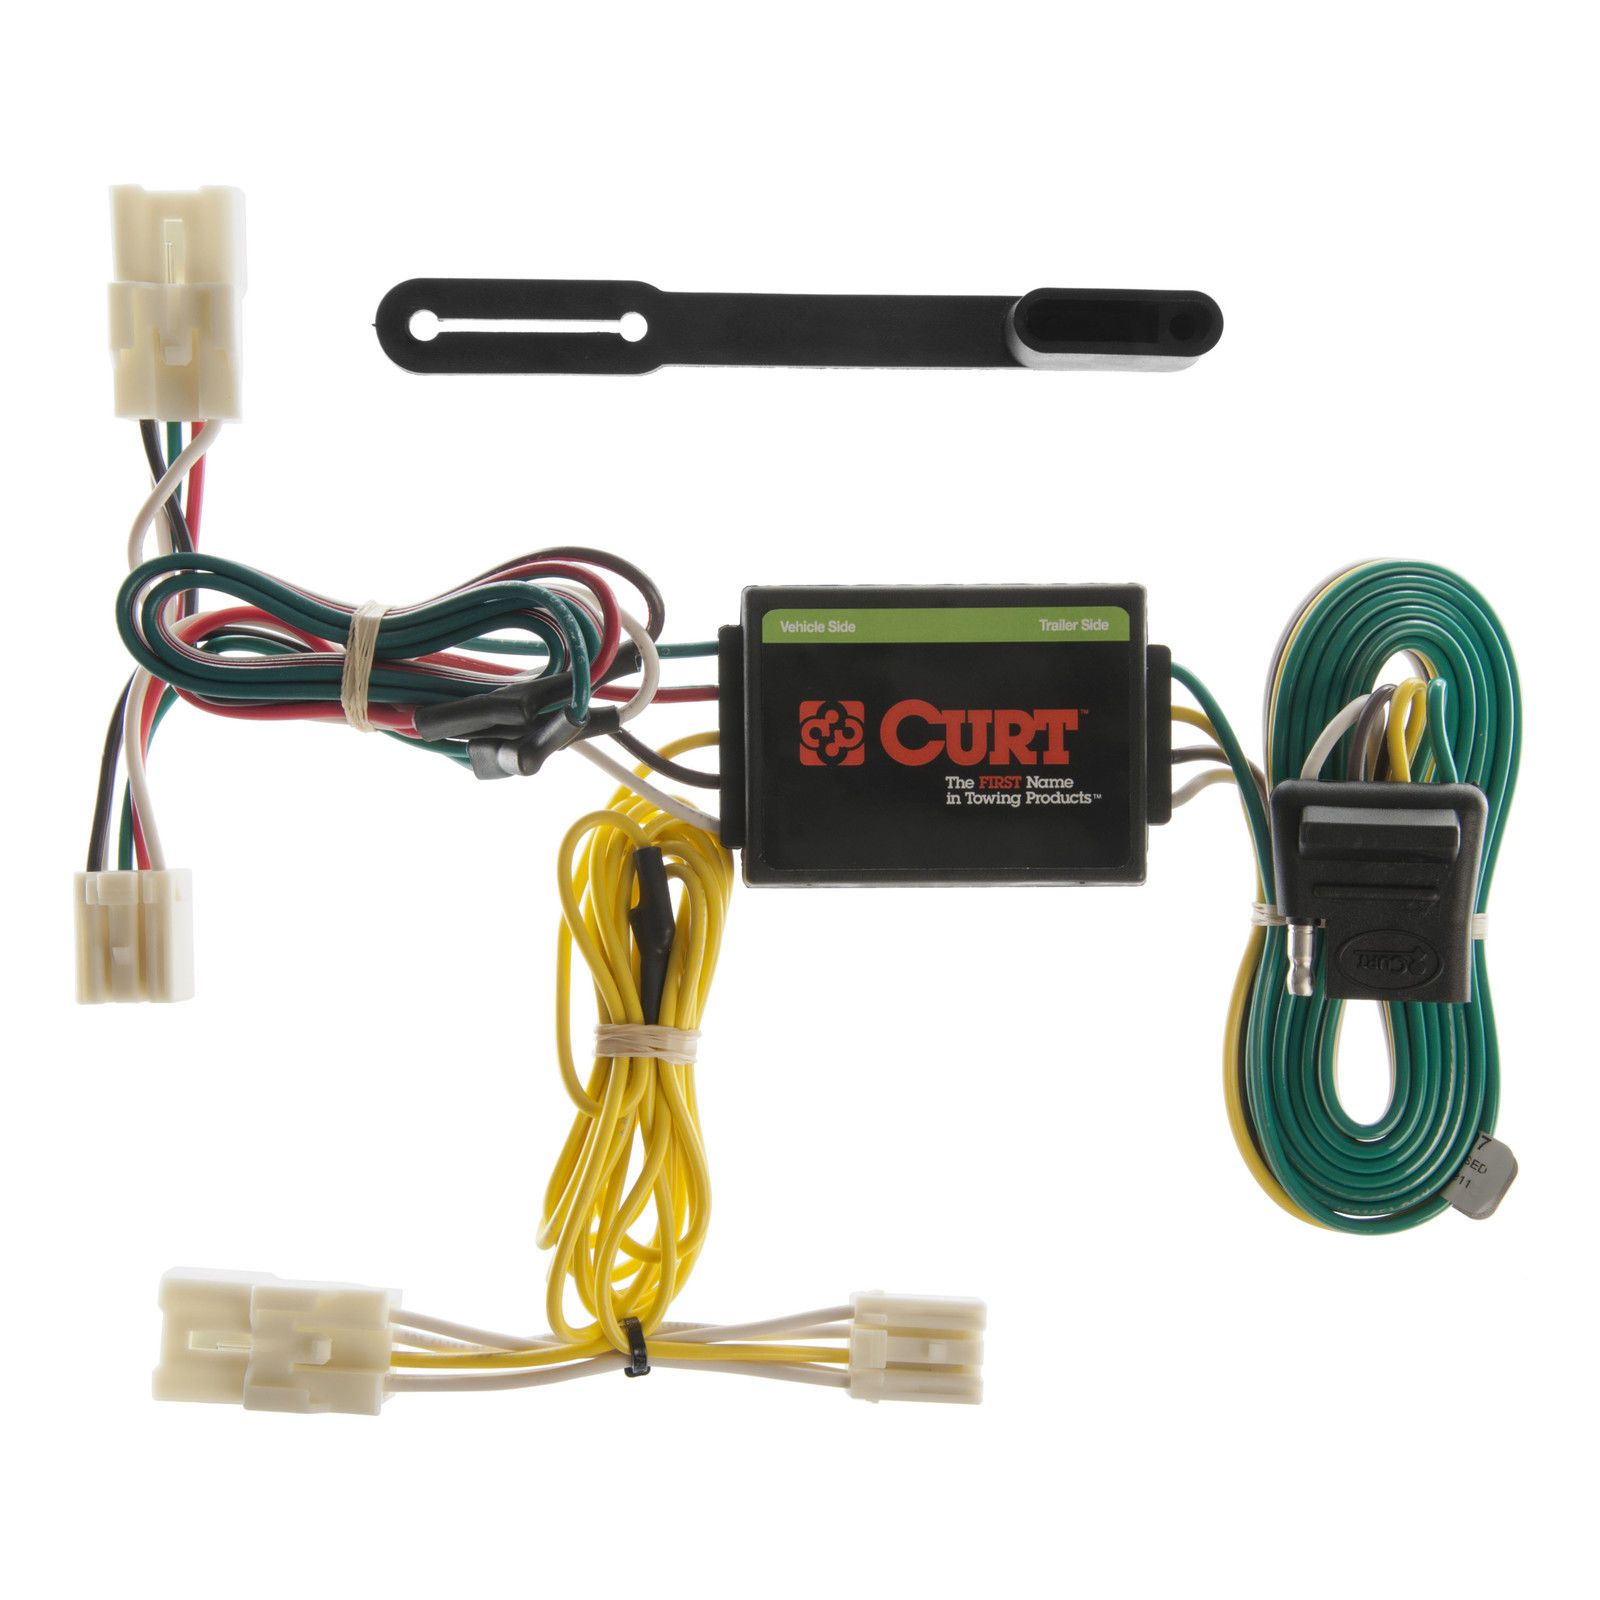 Curt Custom Vehicle To Trailer Wiring Harness 55307 For 2001 2005 Toyota Rav4